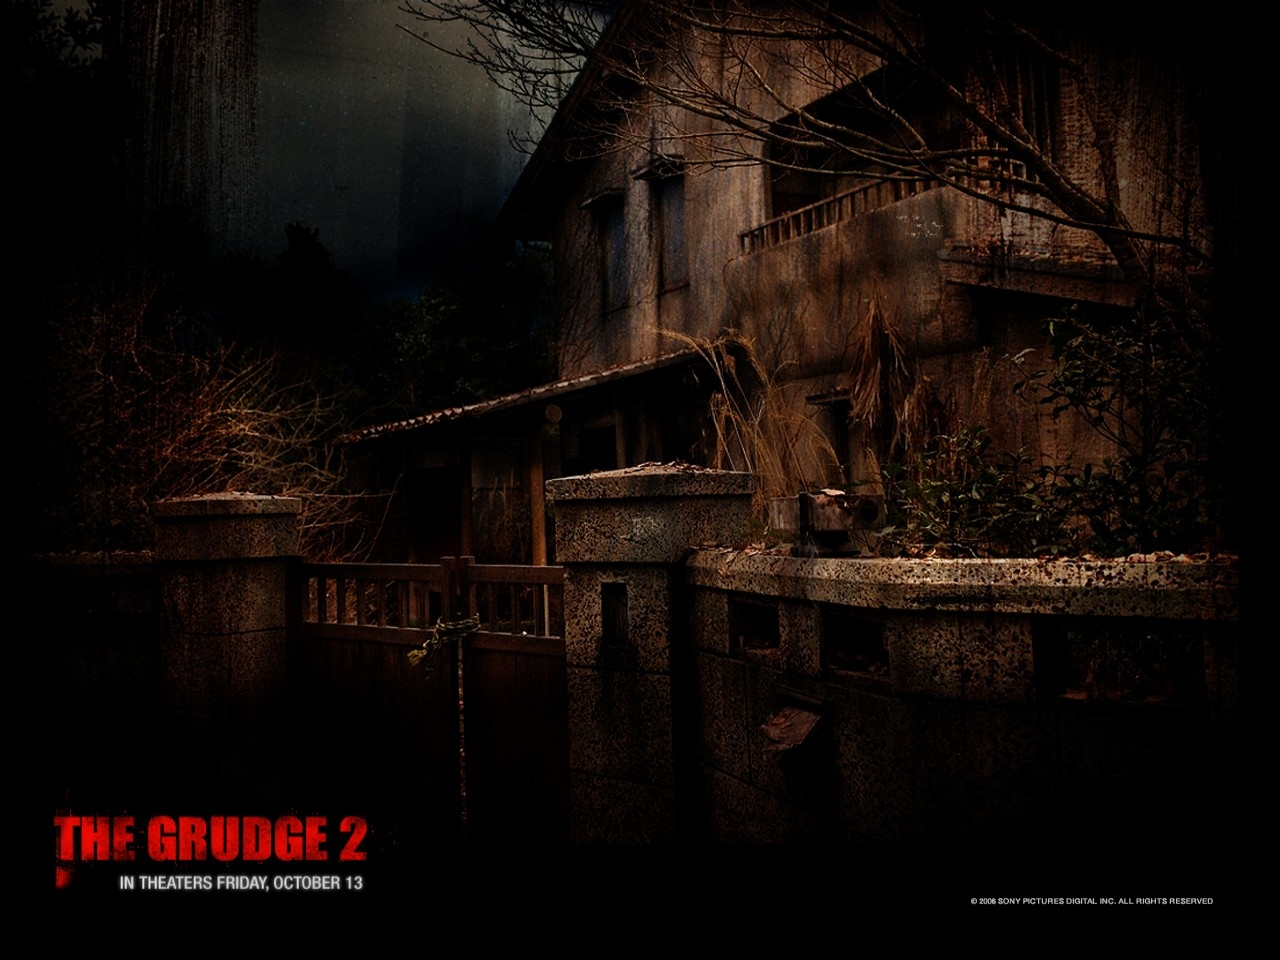 Wallpaper del film The Grudge 2